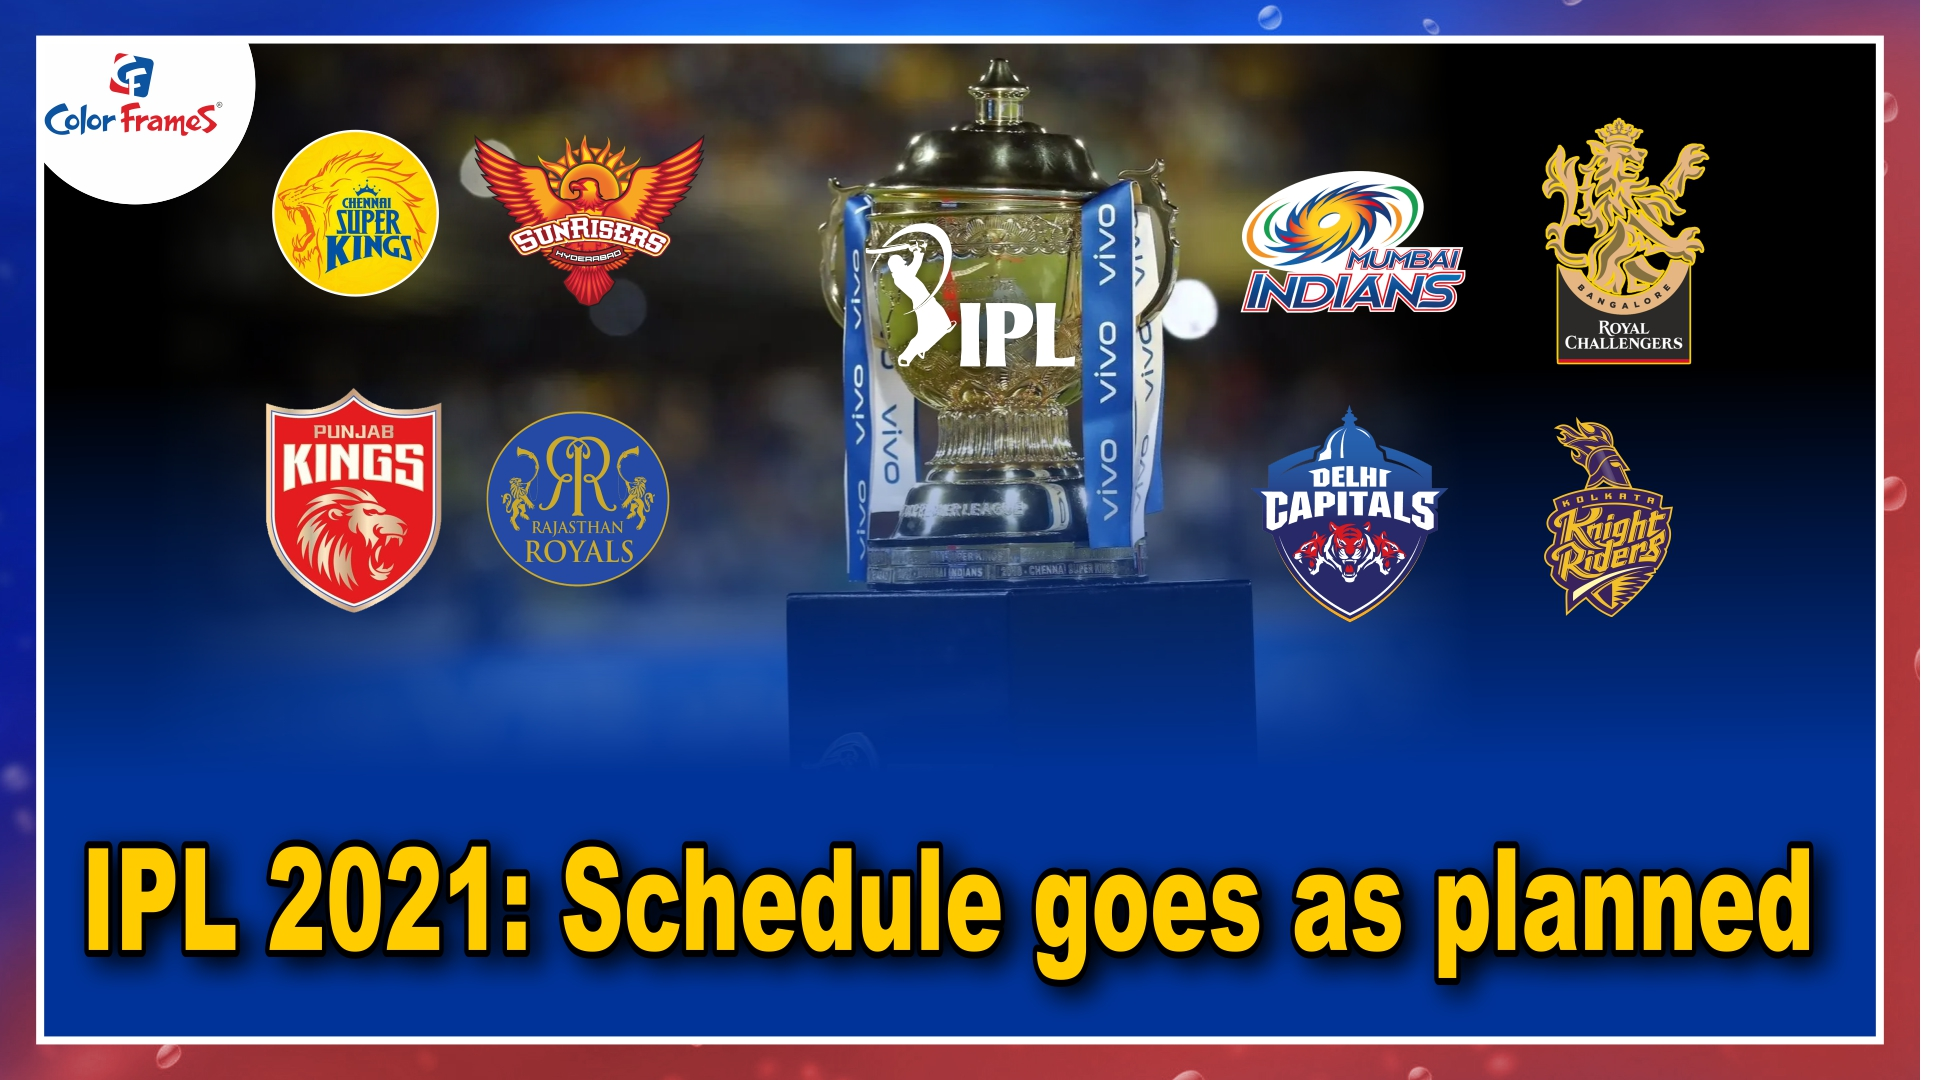 IPL 2021: Schedule goes as planned